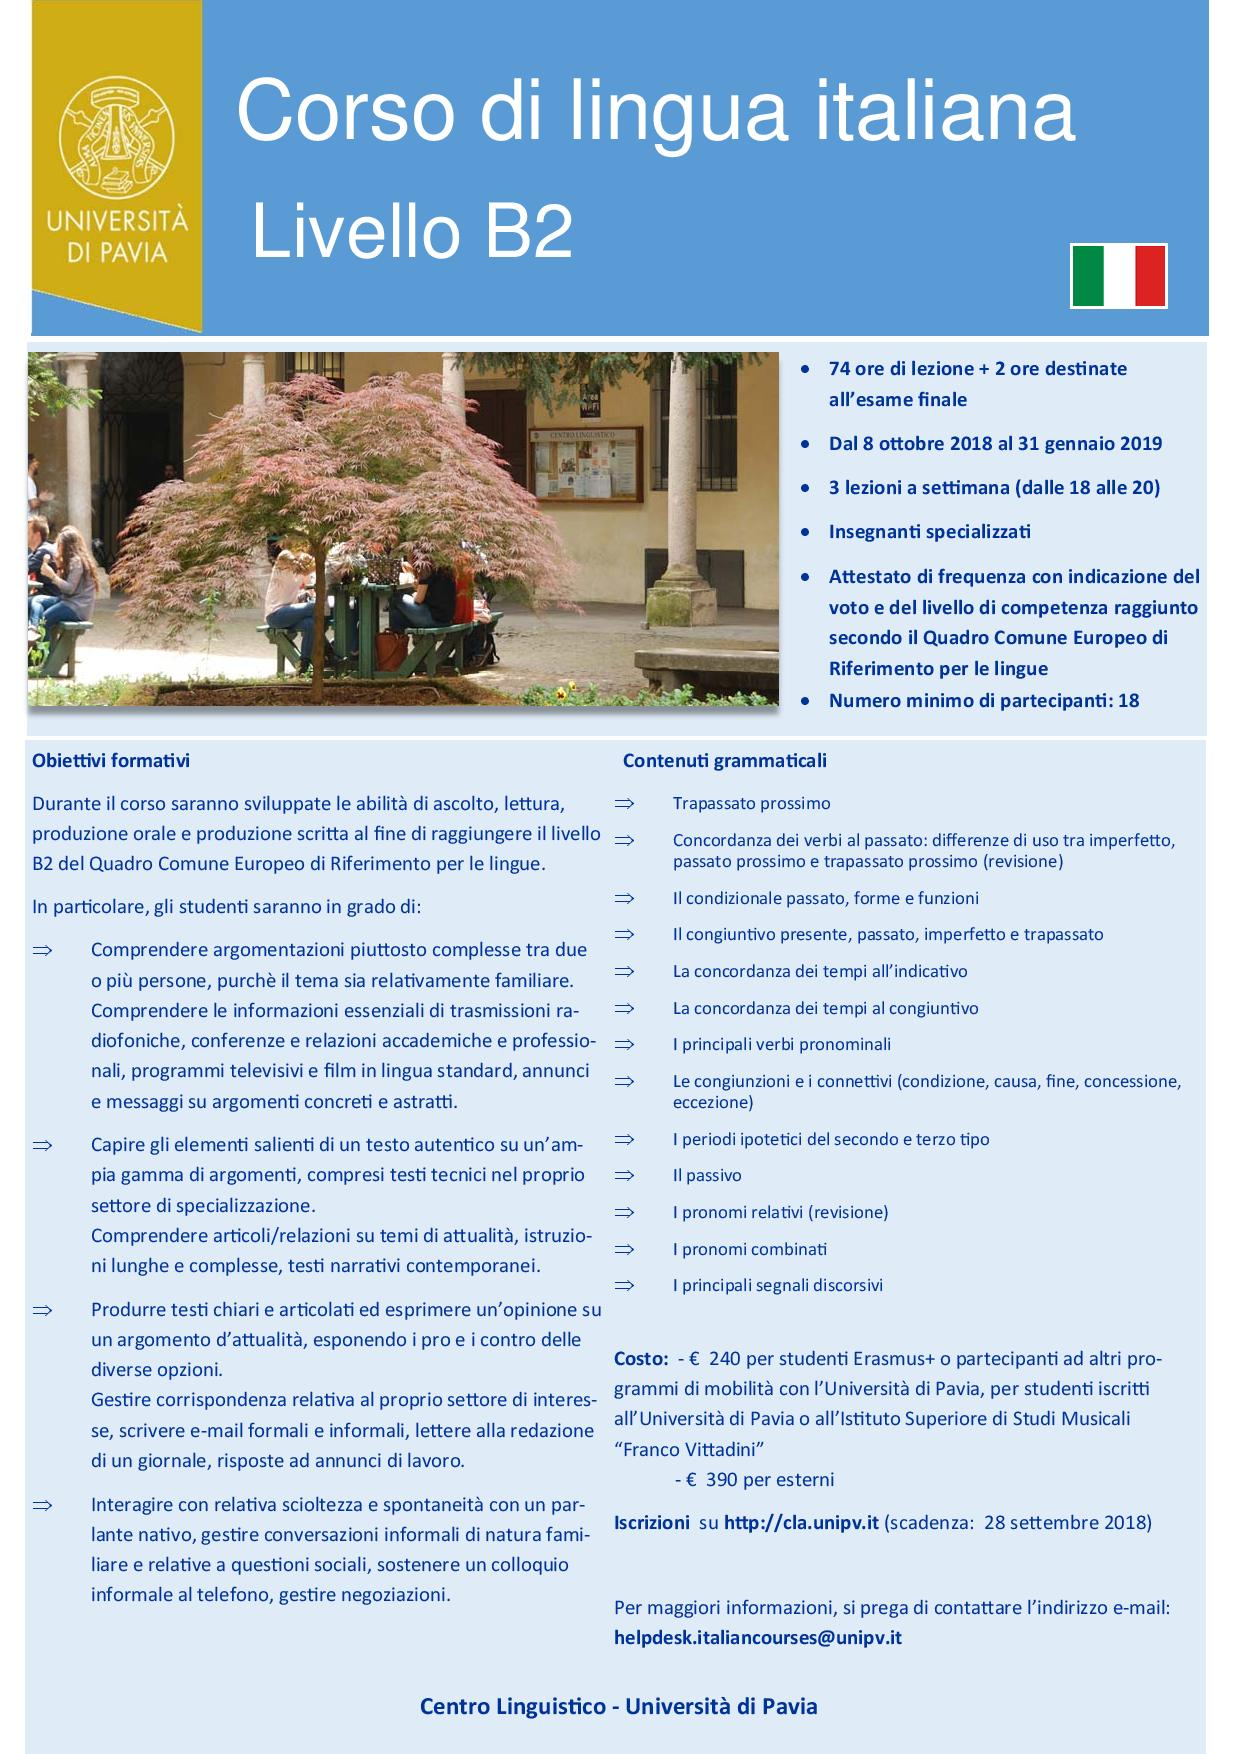 Learn Italian At The Language Centre